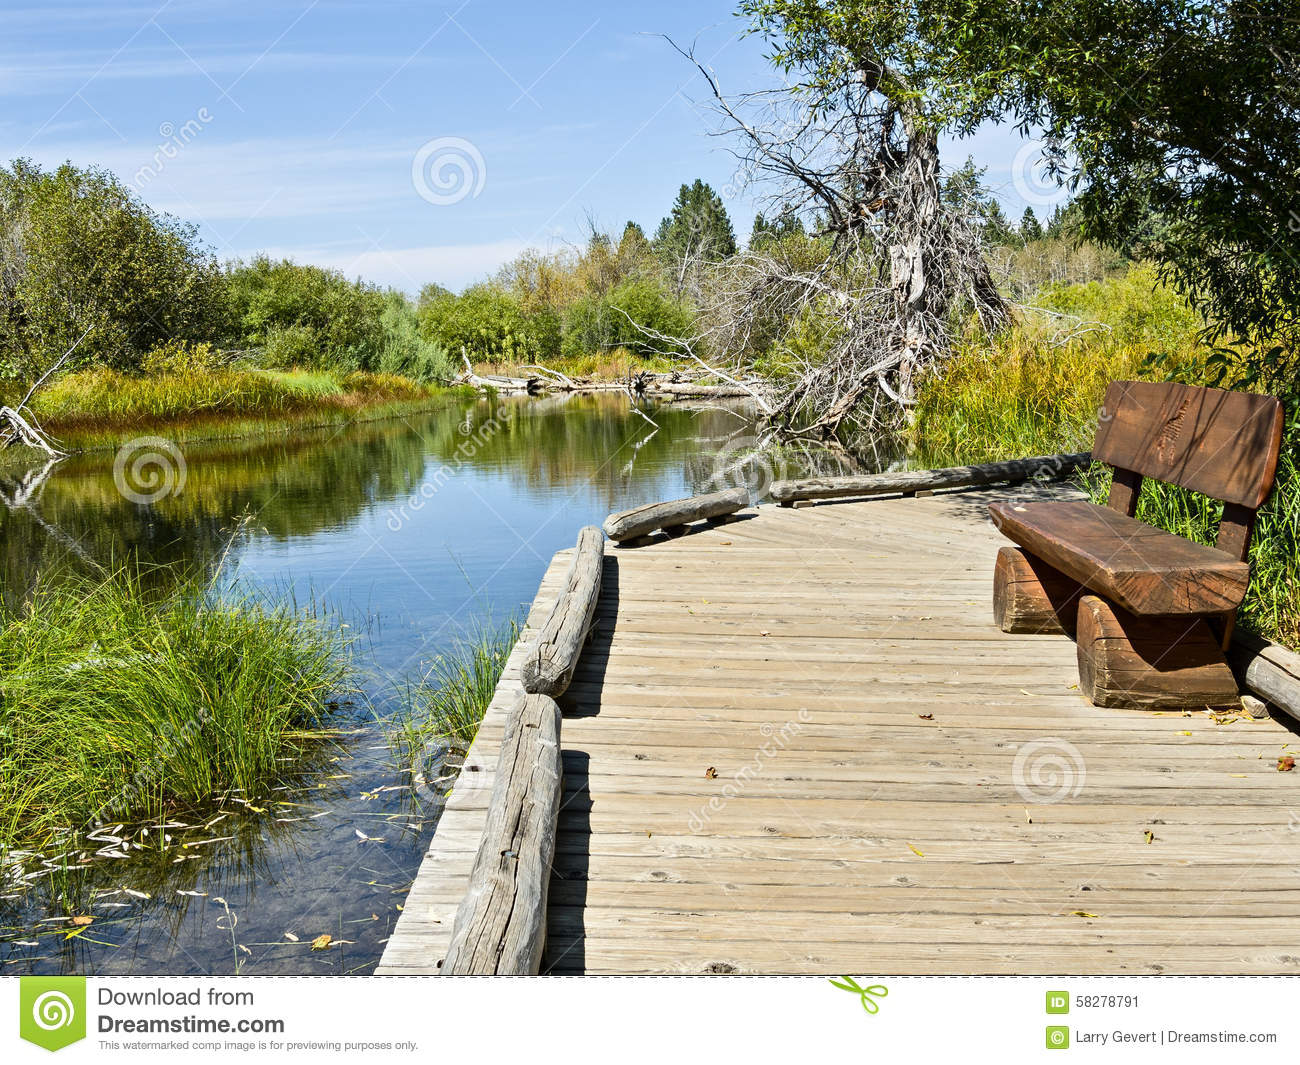 Bench and boardwalk